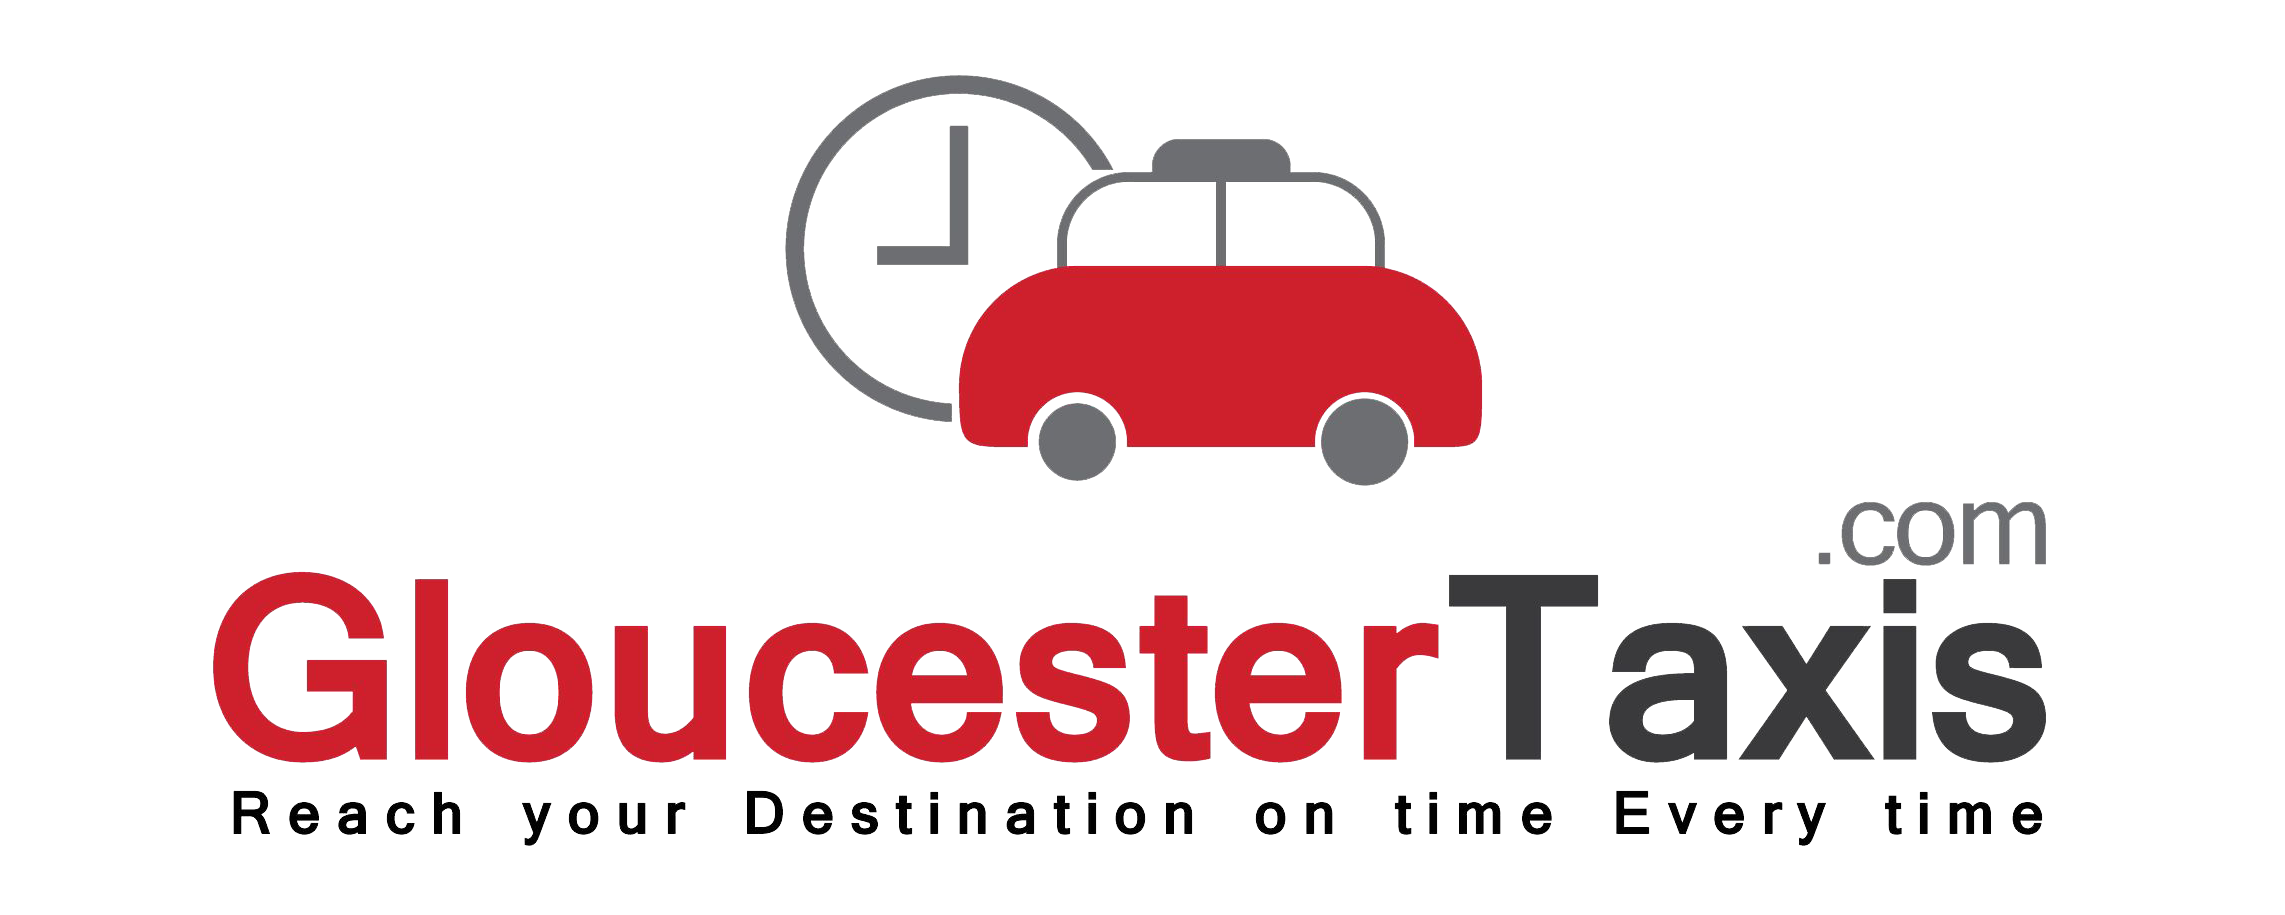 gloucestertaxis safe fast reliable taxi service in